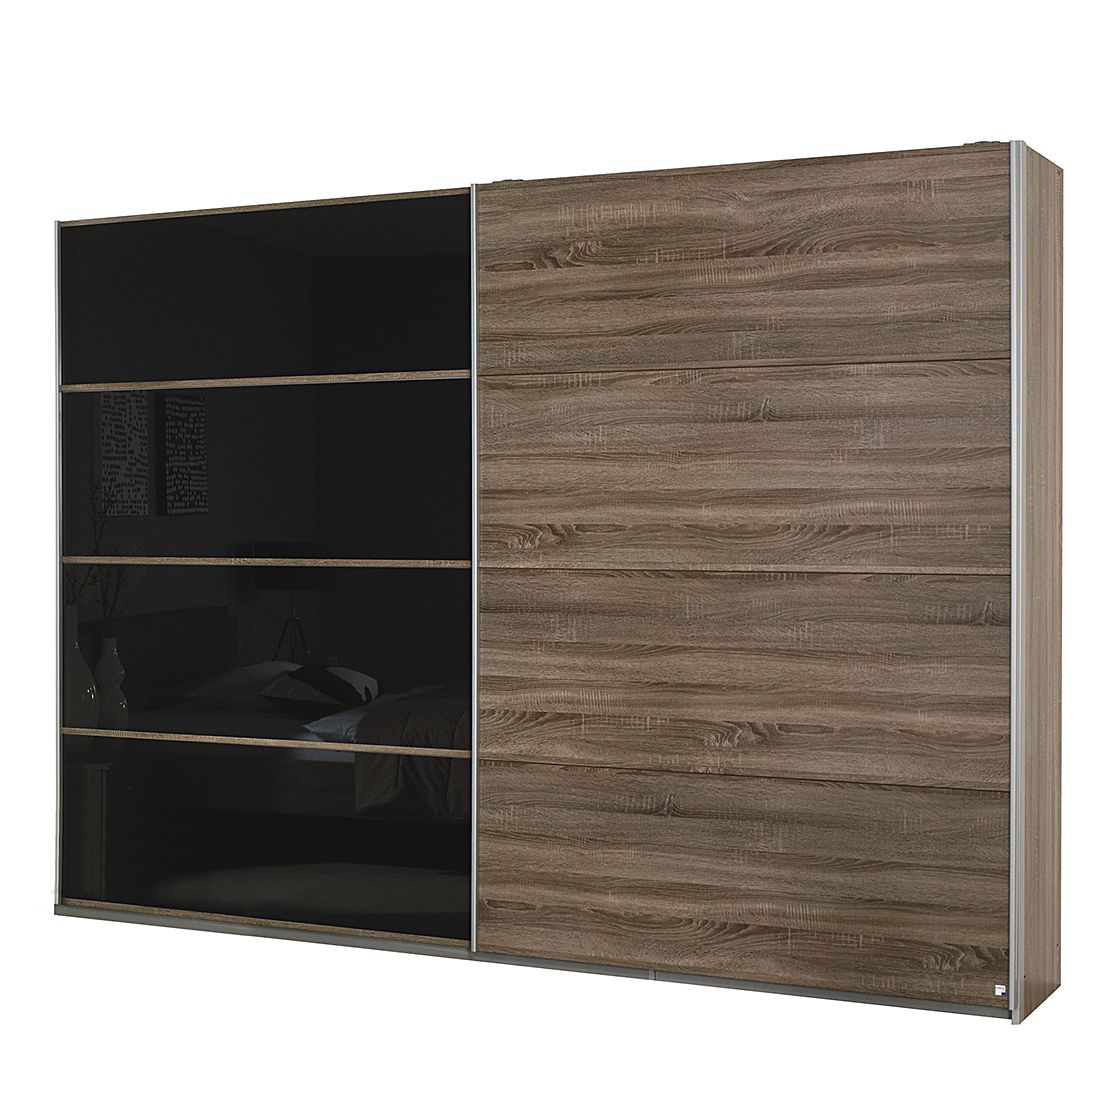 schwebet renschrank classic oak eiche havanna glas basalt 226cm breit. Black Bedroom Furniture Sets. Home Design Ideas